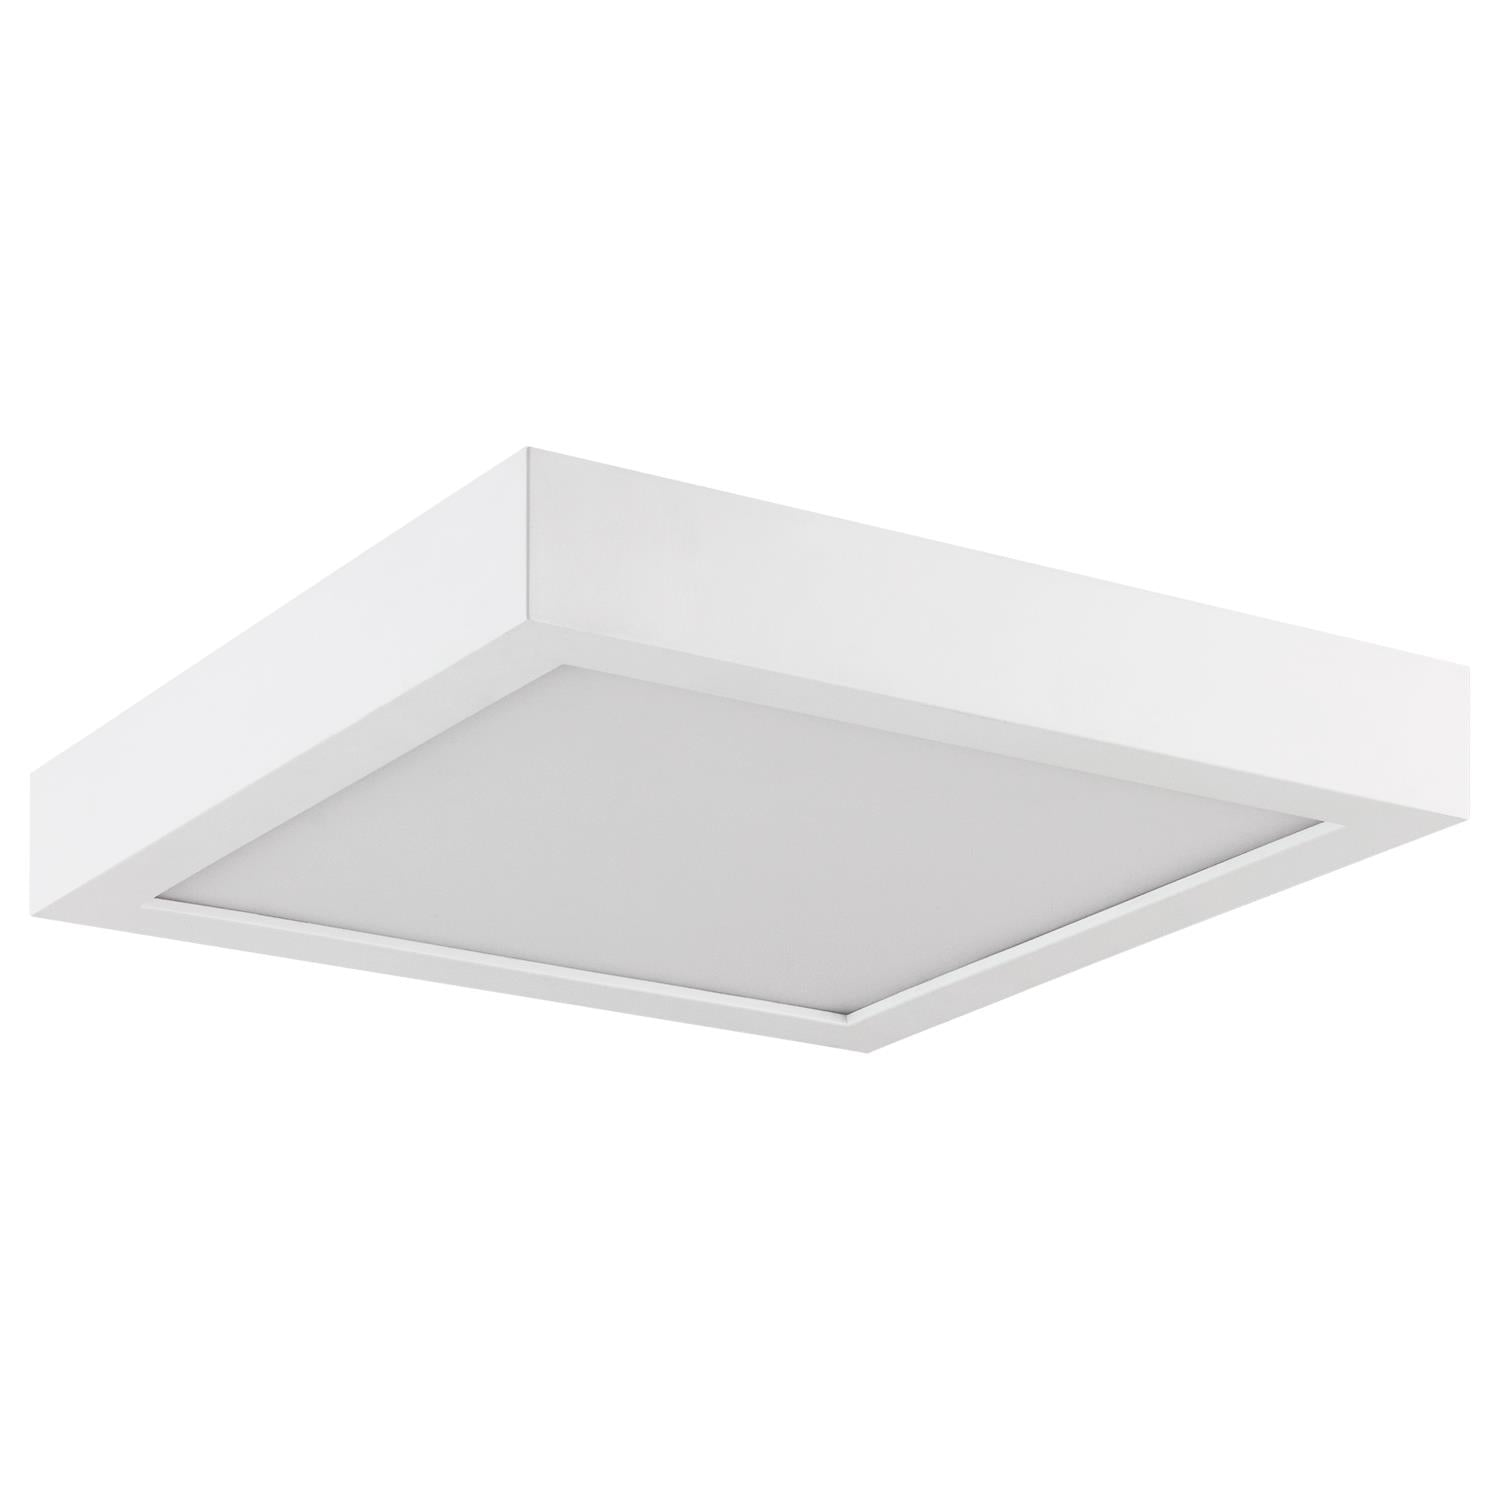 SUNLITE 19W 9in. Square LED Surface Mount Downlight 4000K Cool White